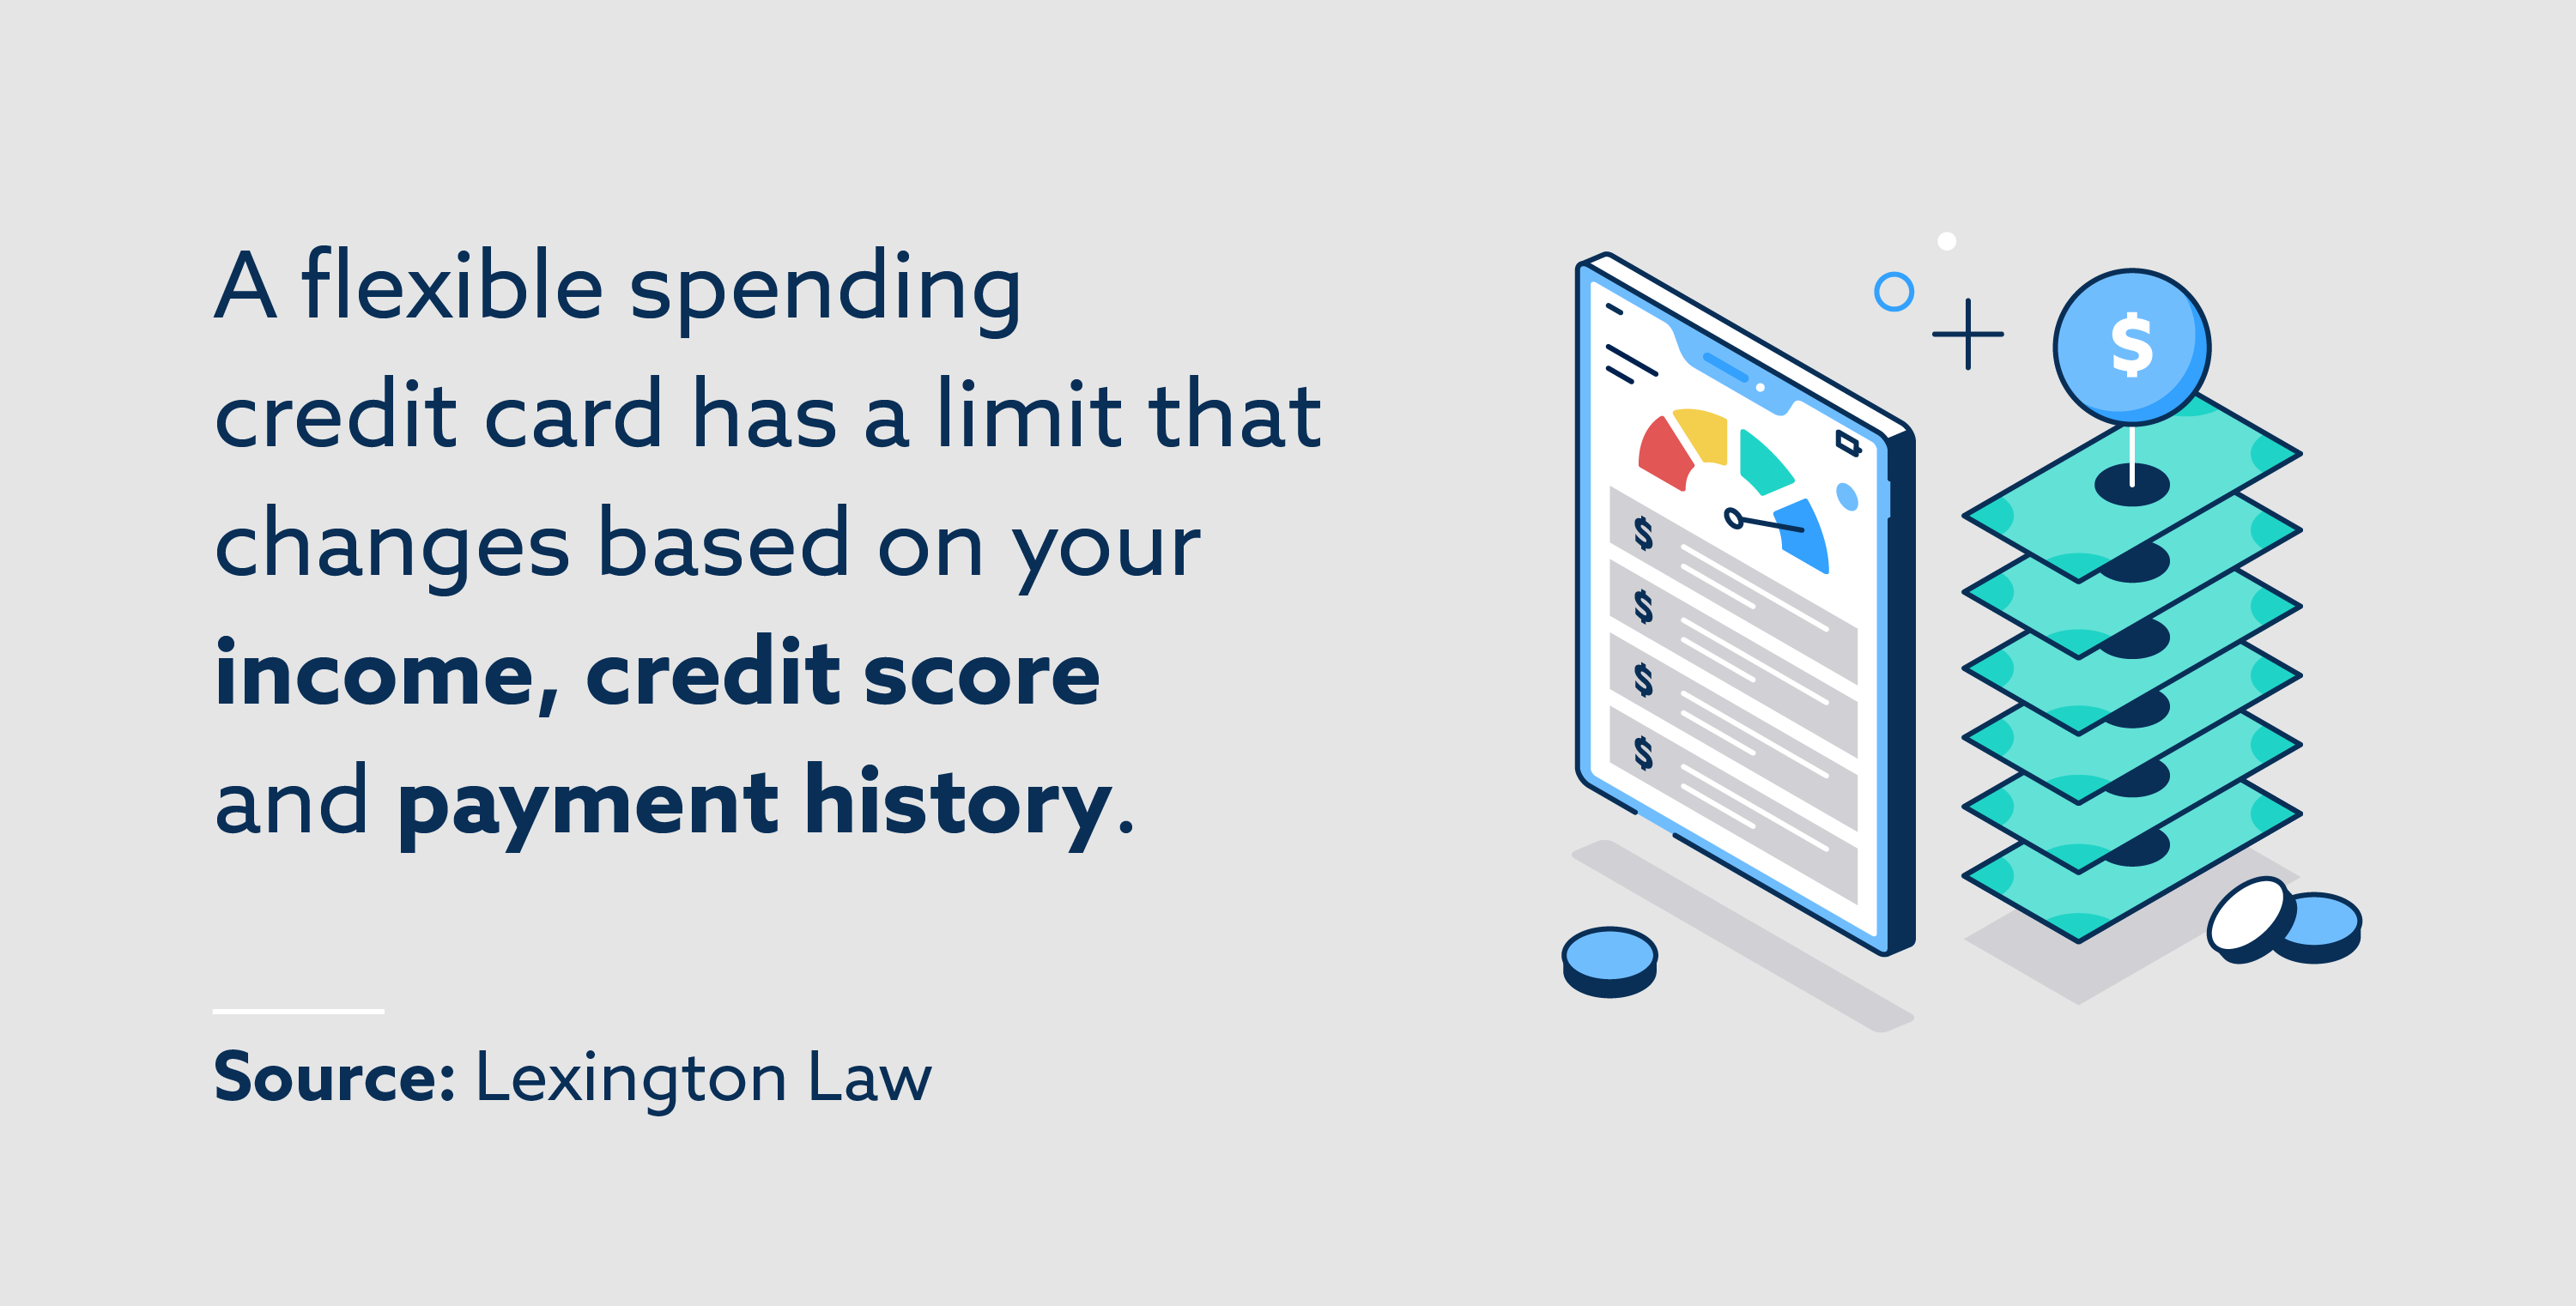 A flexible spending credit card has a limit that changes based on your income, credit score and payment history.